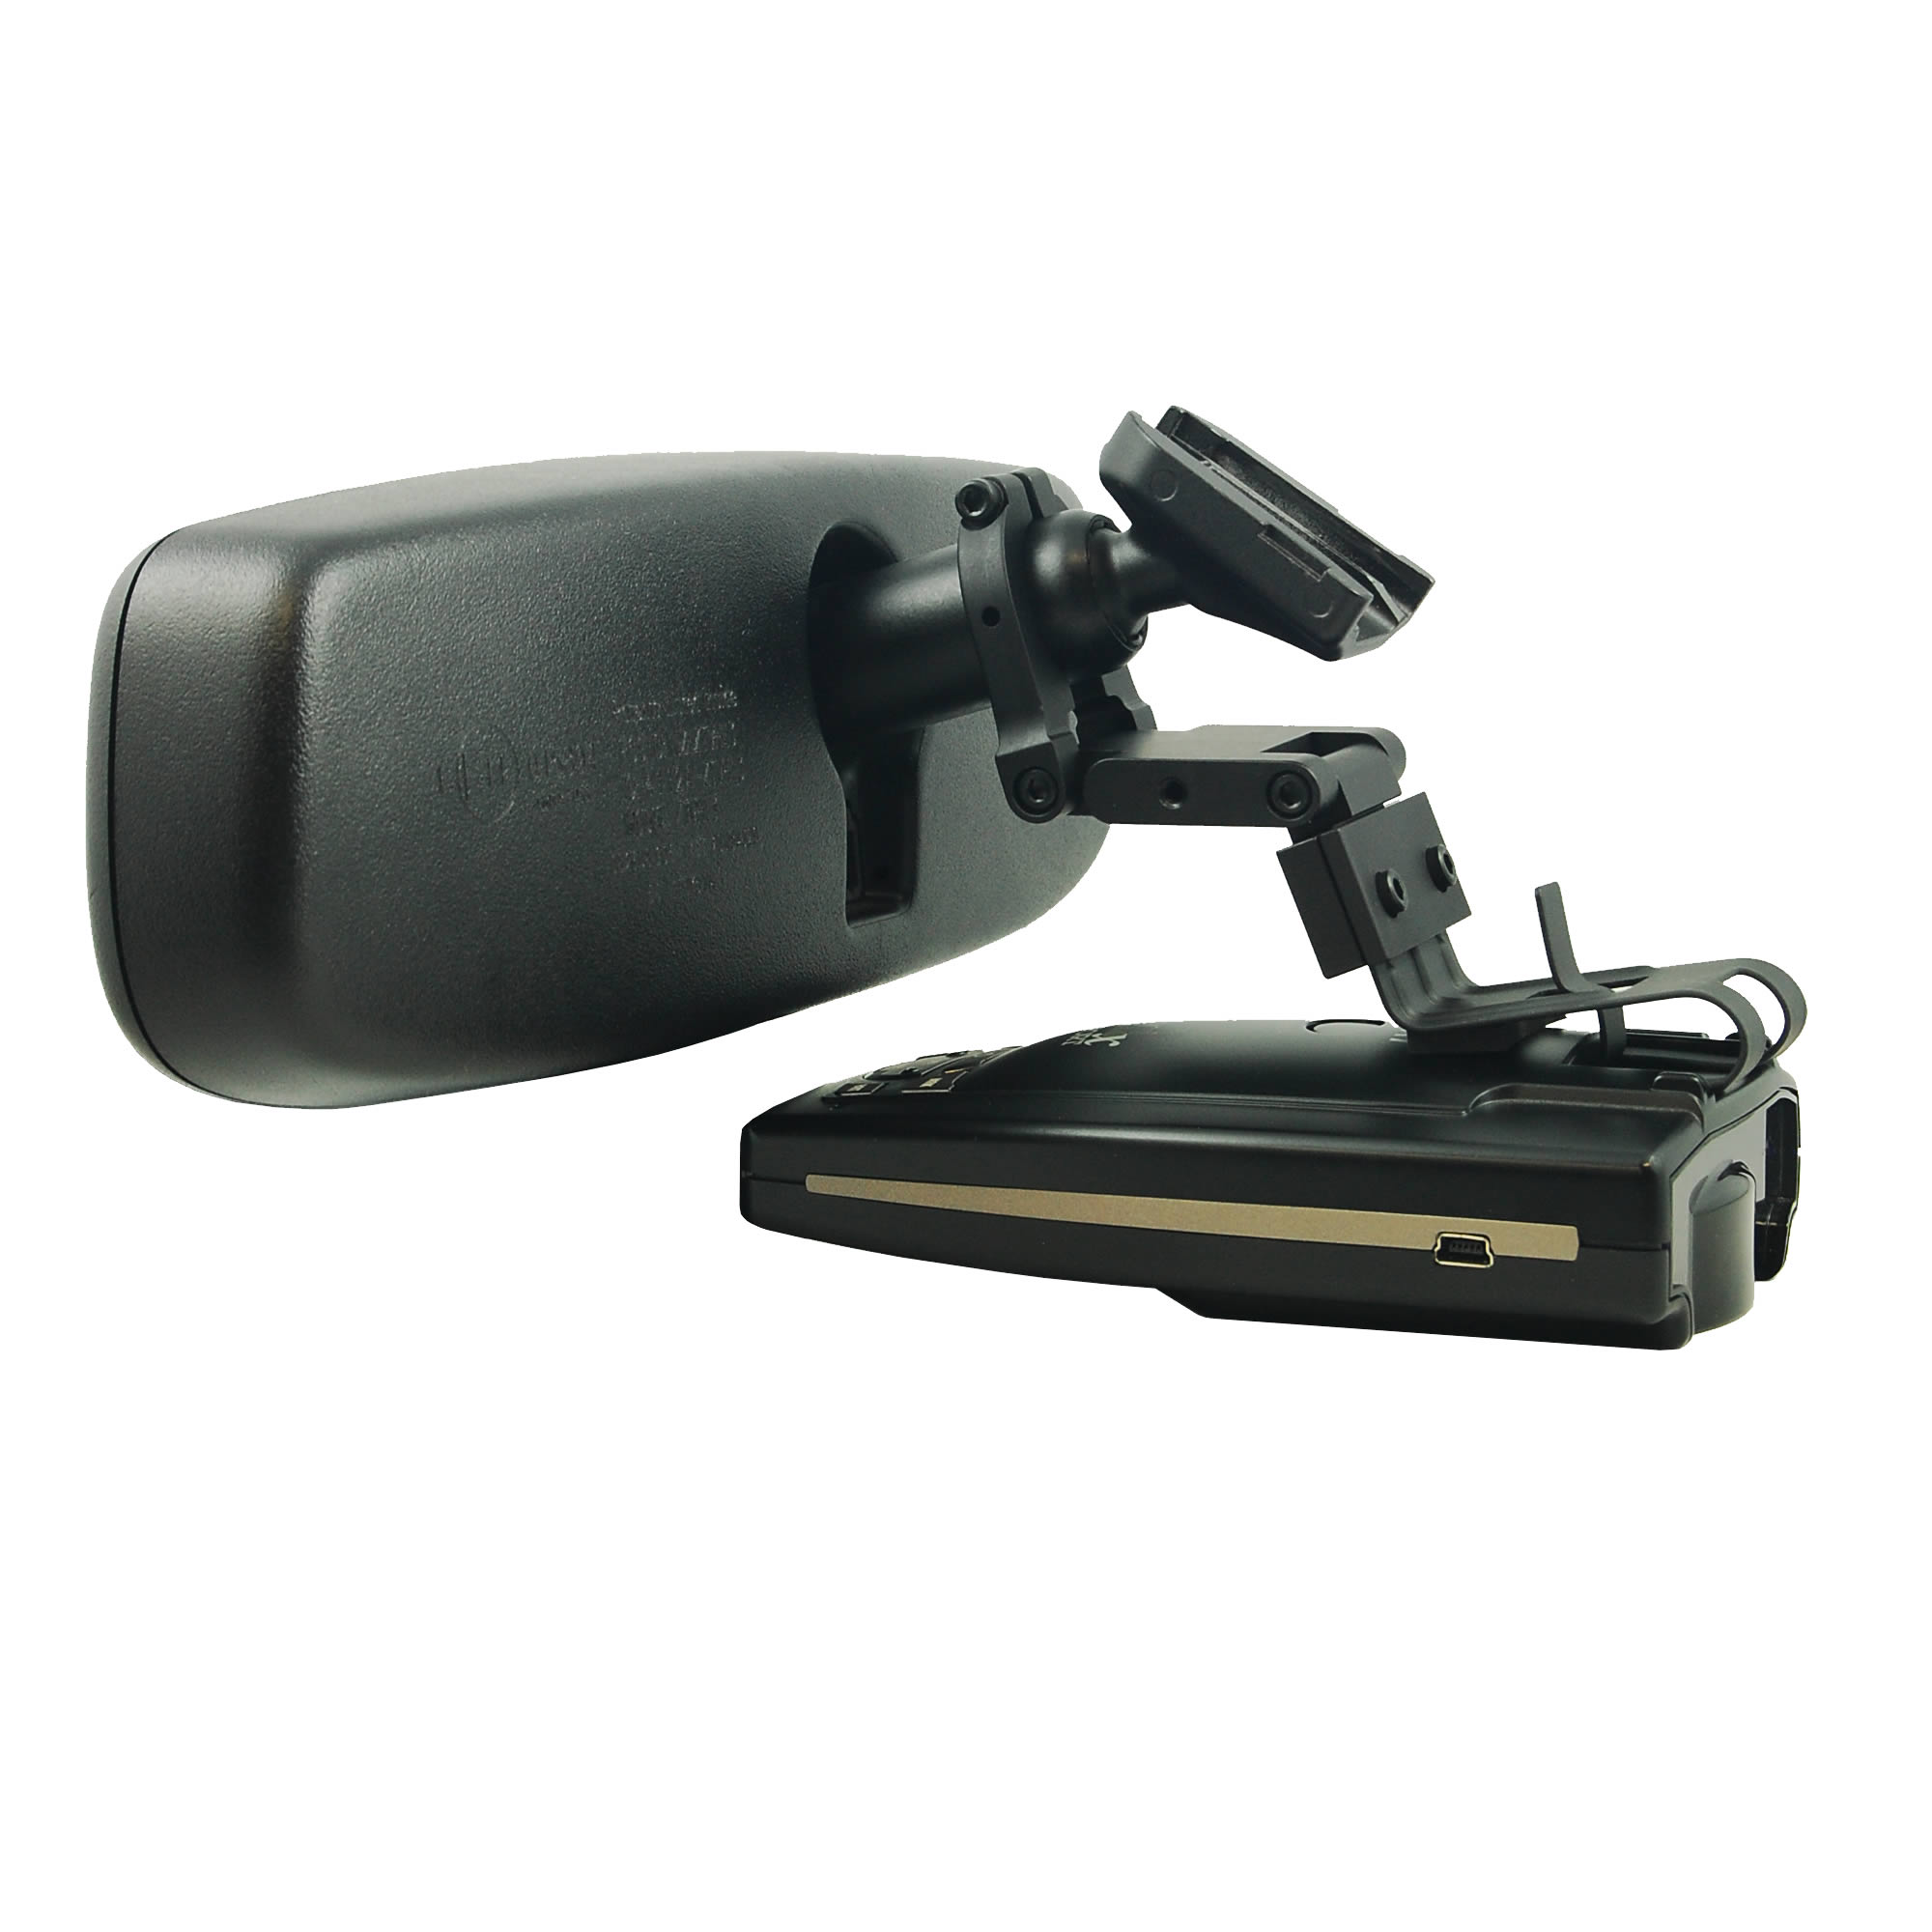 BlendMount BBE-2000R Radar Detector Mount for Escort/Beltronics, Compatible with Most